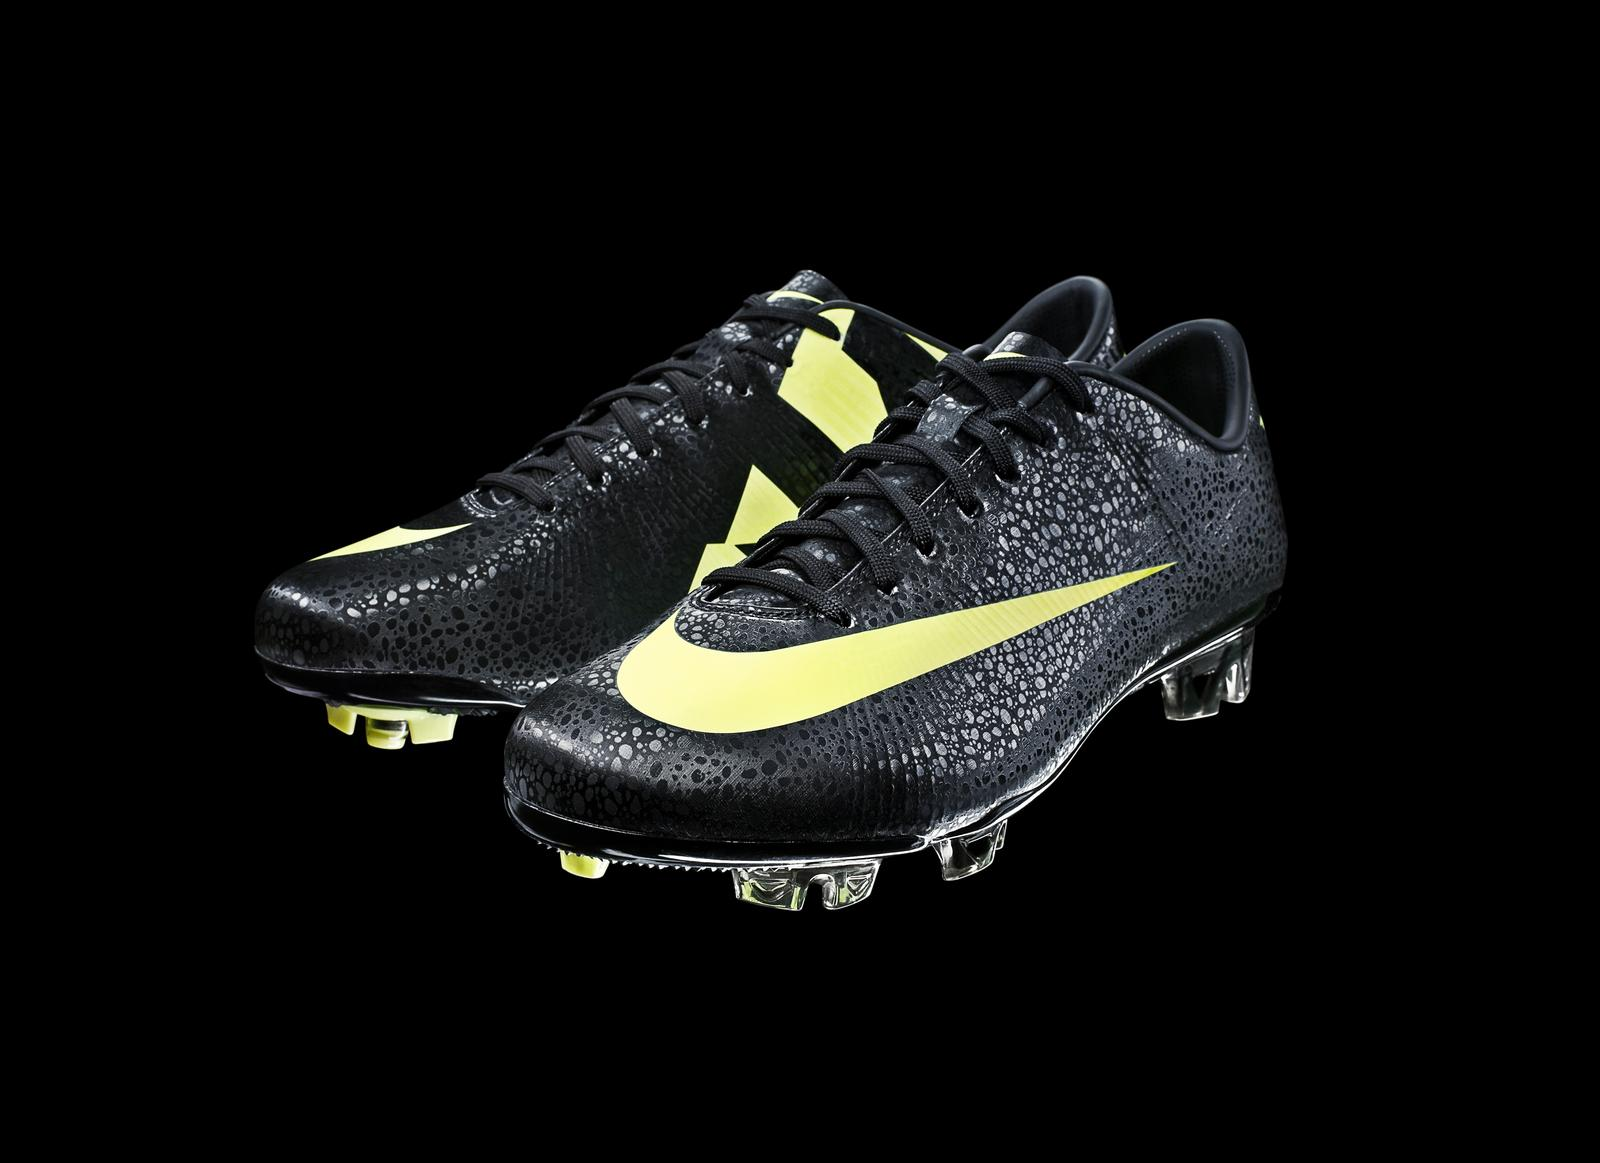 Nike Introduces The CR Mercurial Vapor SuperFly III - Nike ...